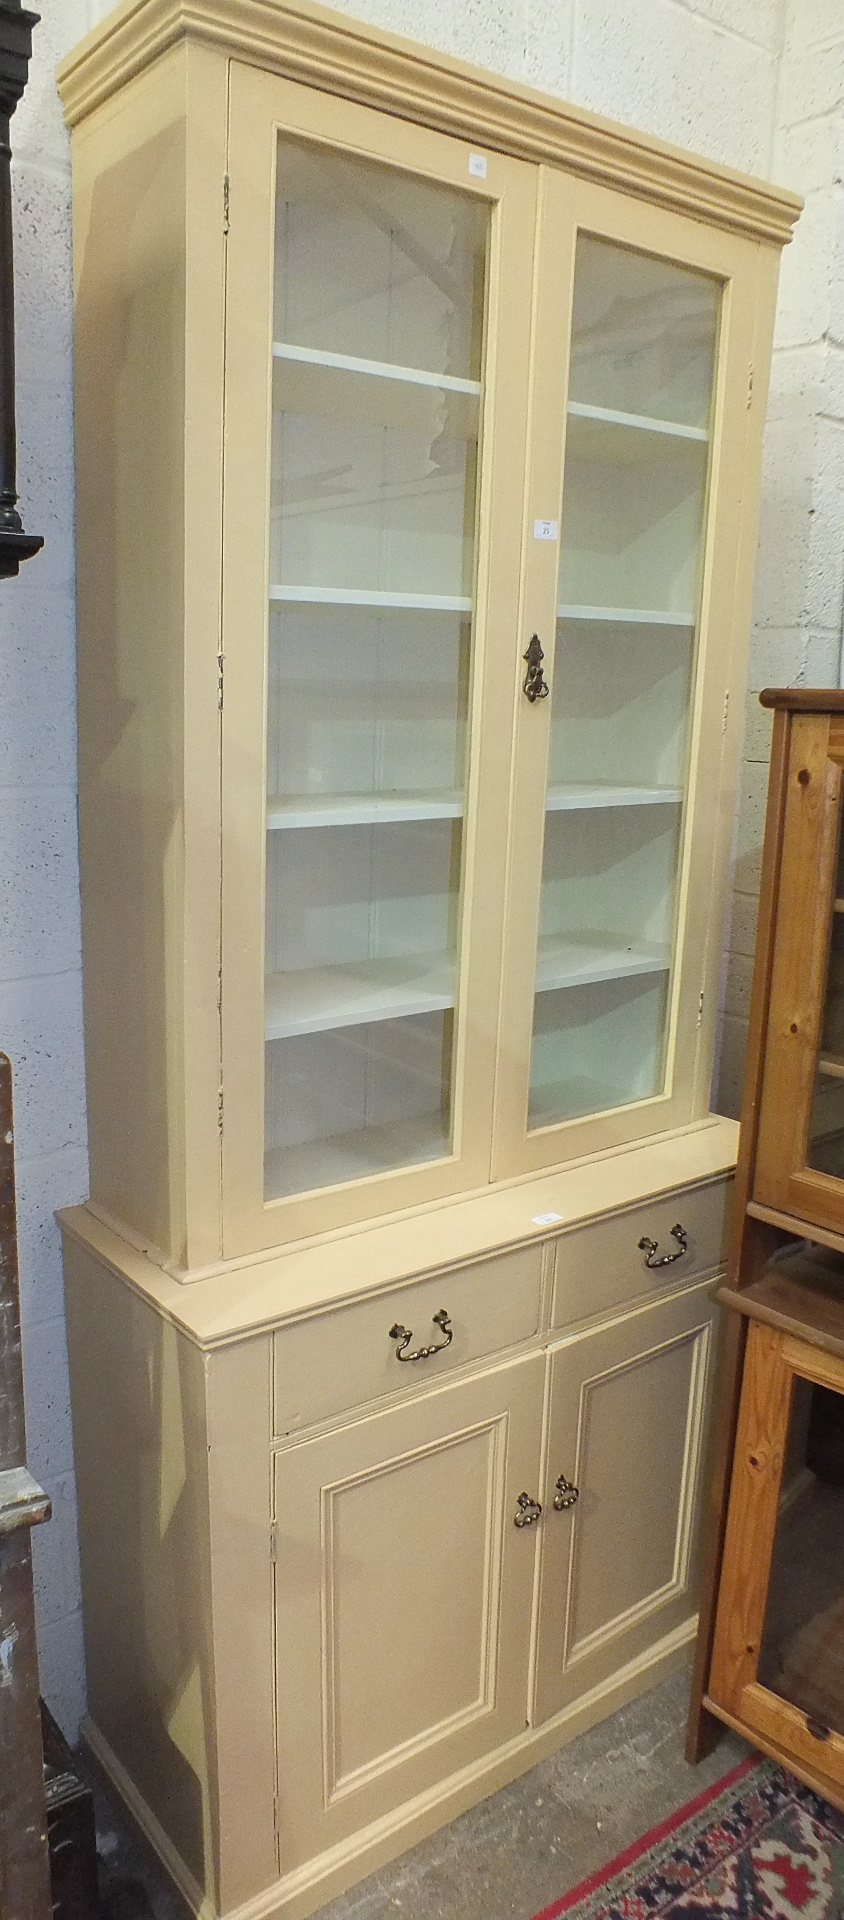 Lot 23 - A late-19th/early-20th century painted pine bookcase, the upper section fitted with a pair of glazed